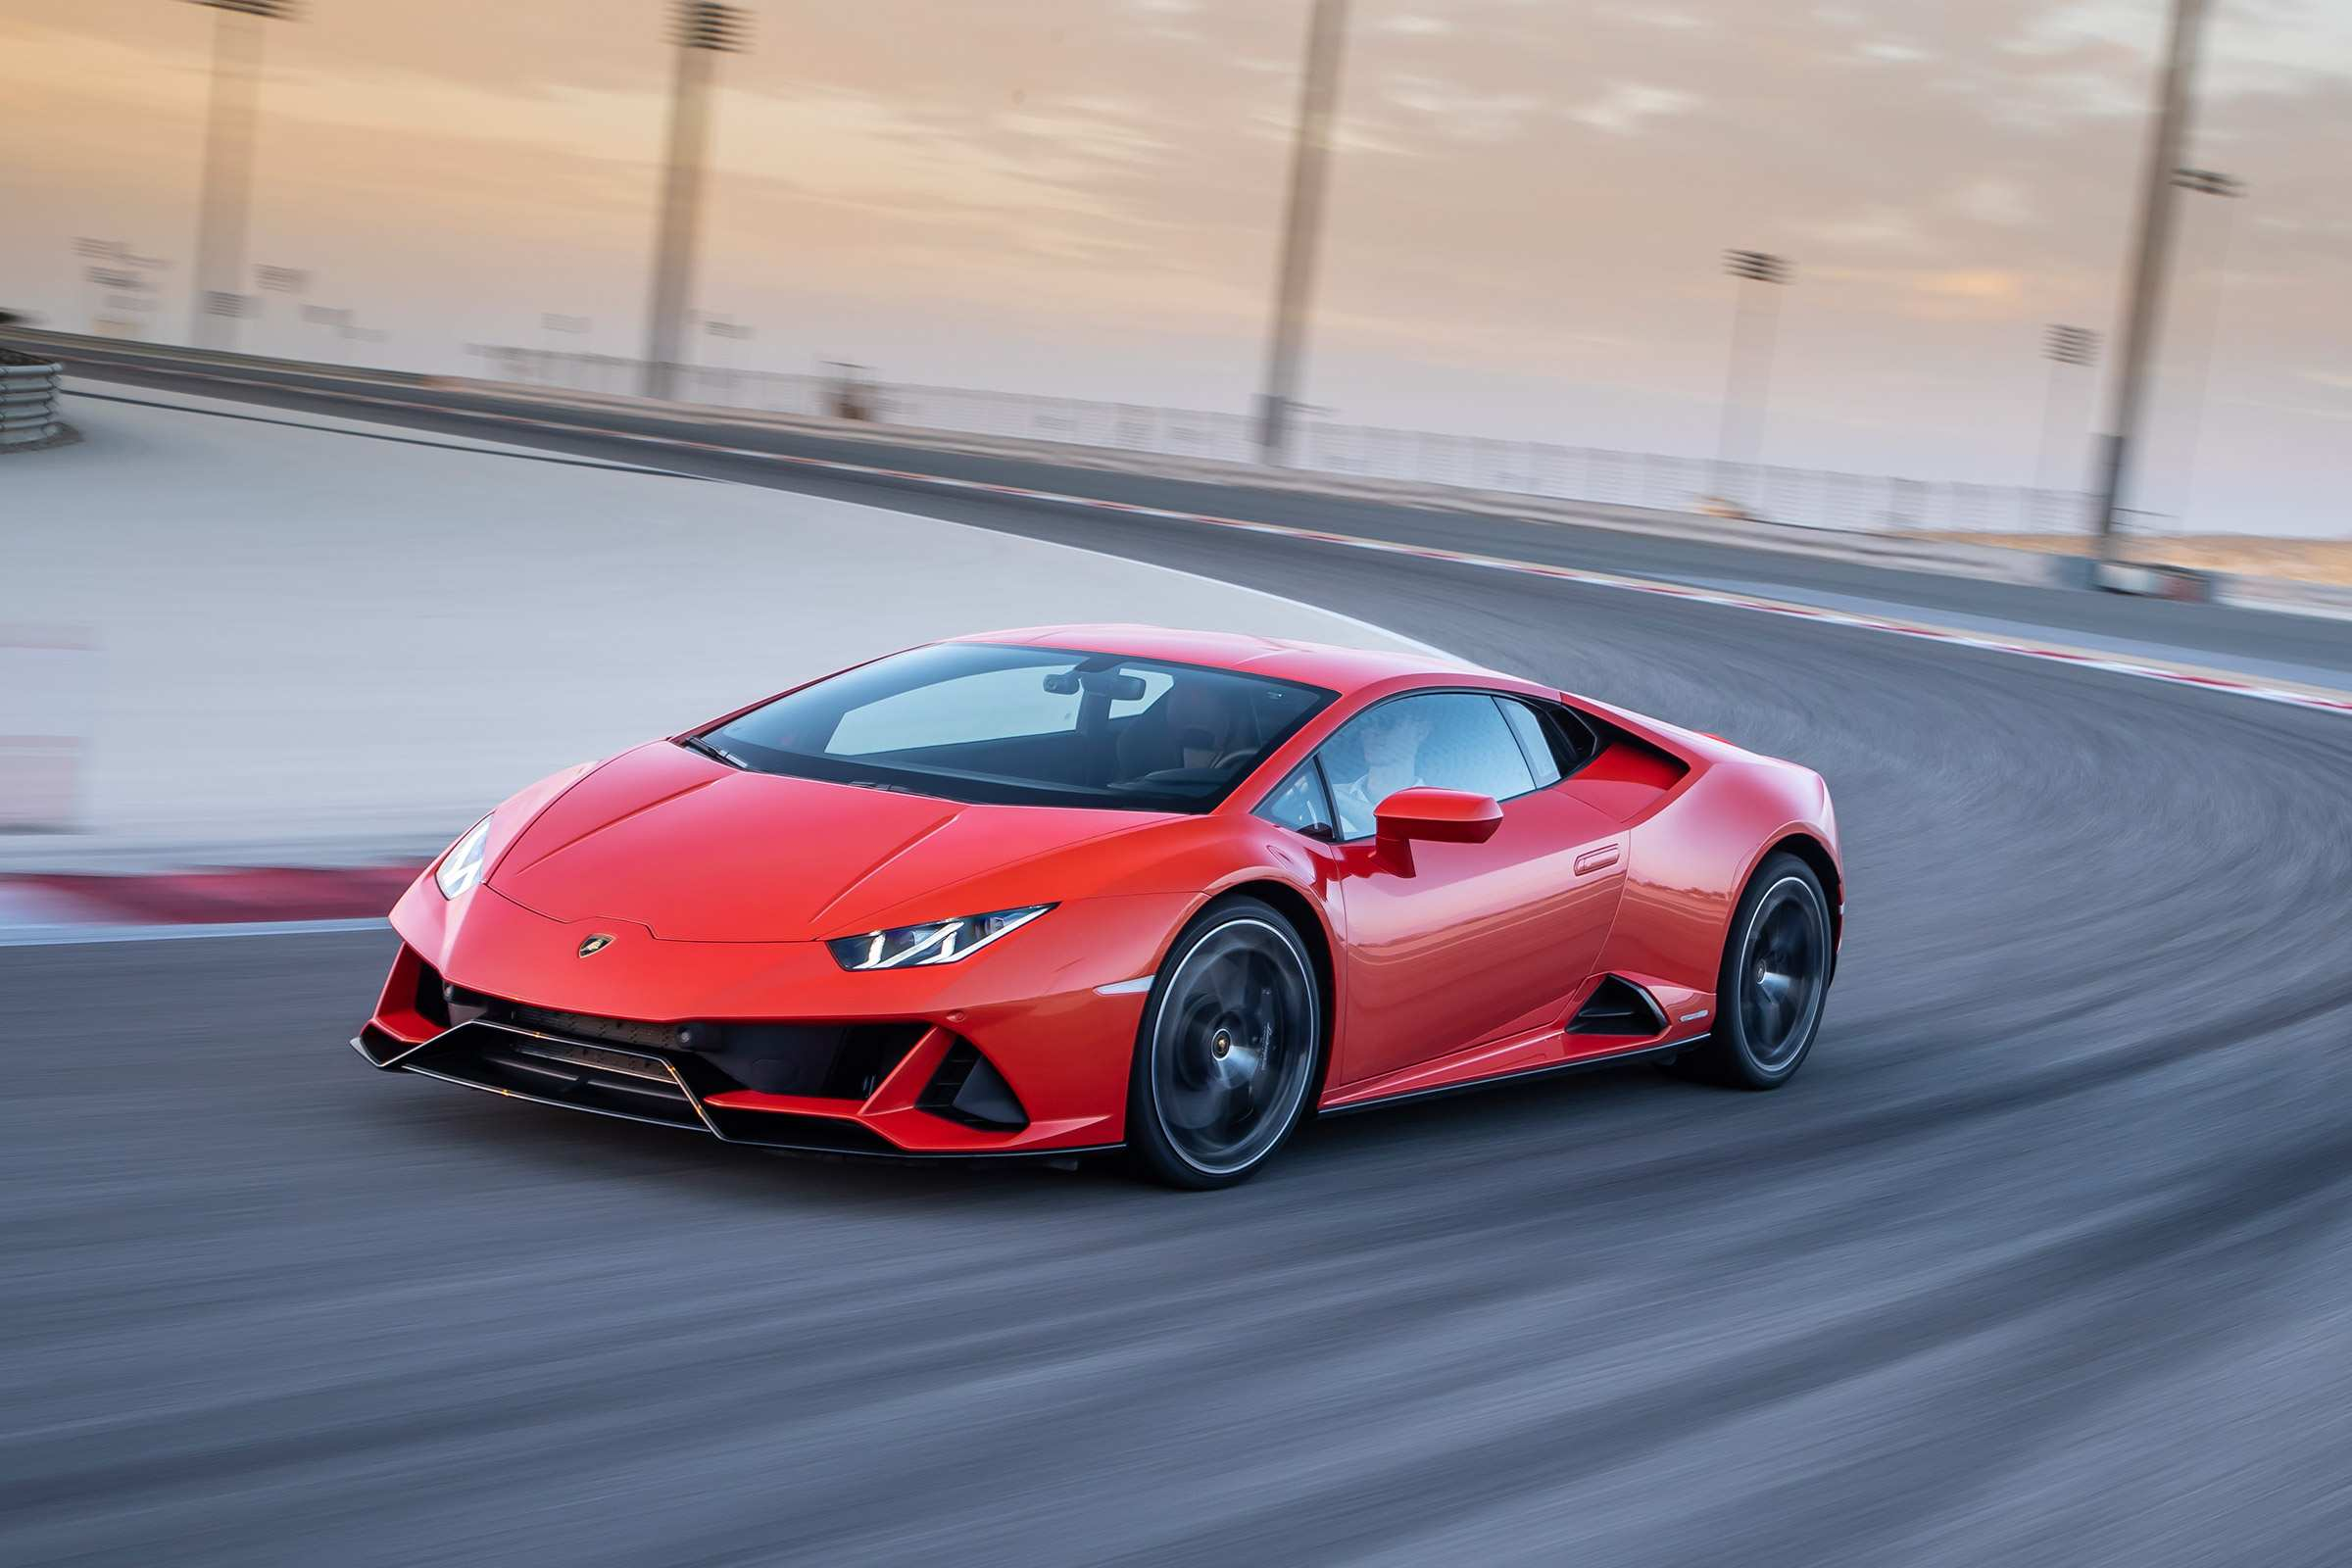 76 Best Review 2019 Lamborghini Huracan Horsepower New Review for 2019 Lamborghini Huracan Horsepower